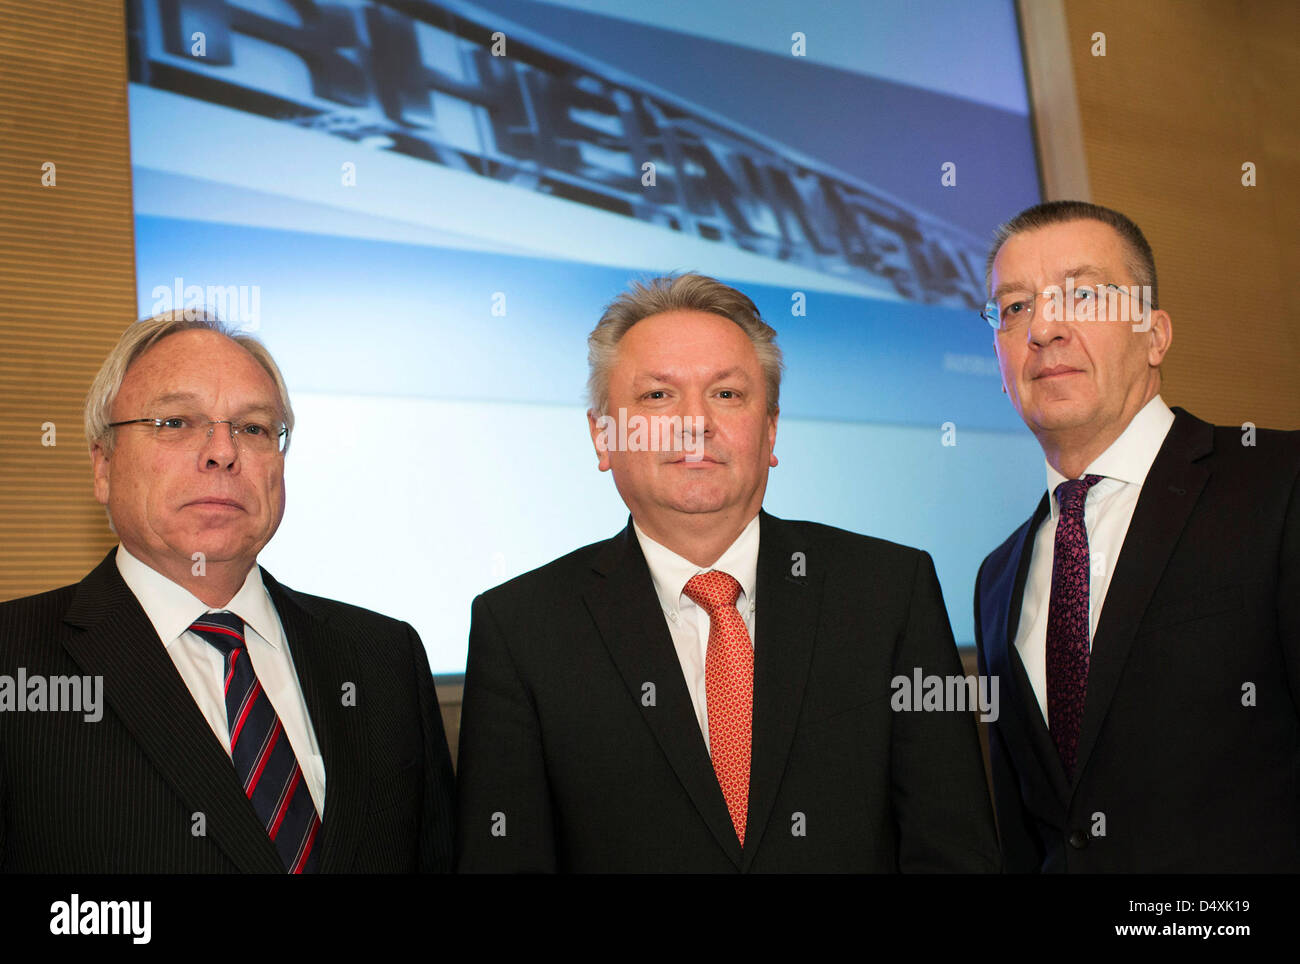 Rheinmetall AG board members Gerd Kleinert (L-R), Armin Papperger and Helmut P. Merch pose during the balance press - Stock Image